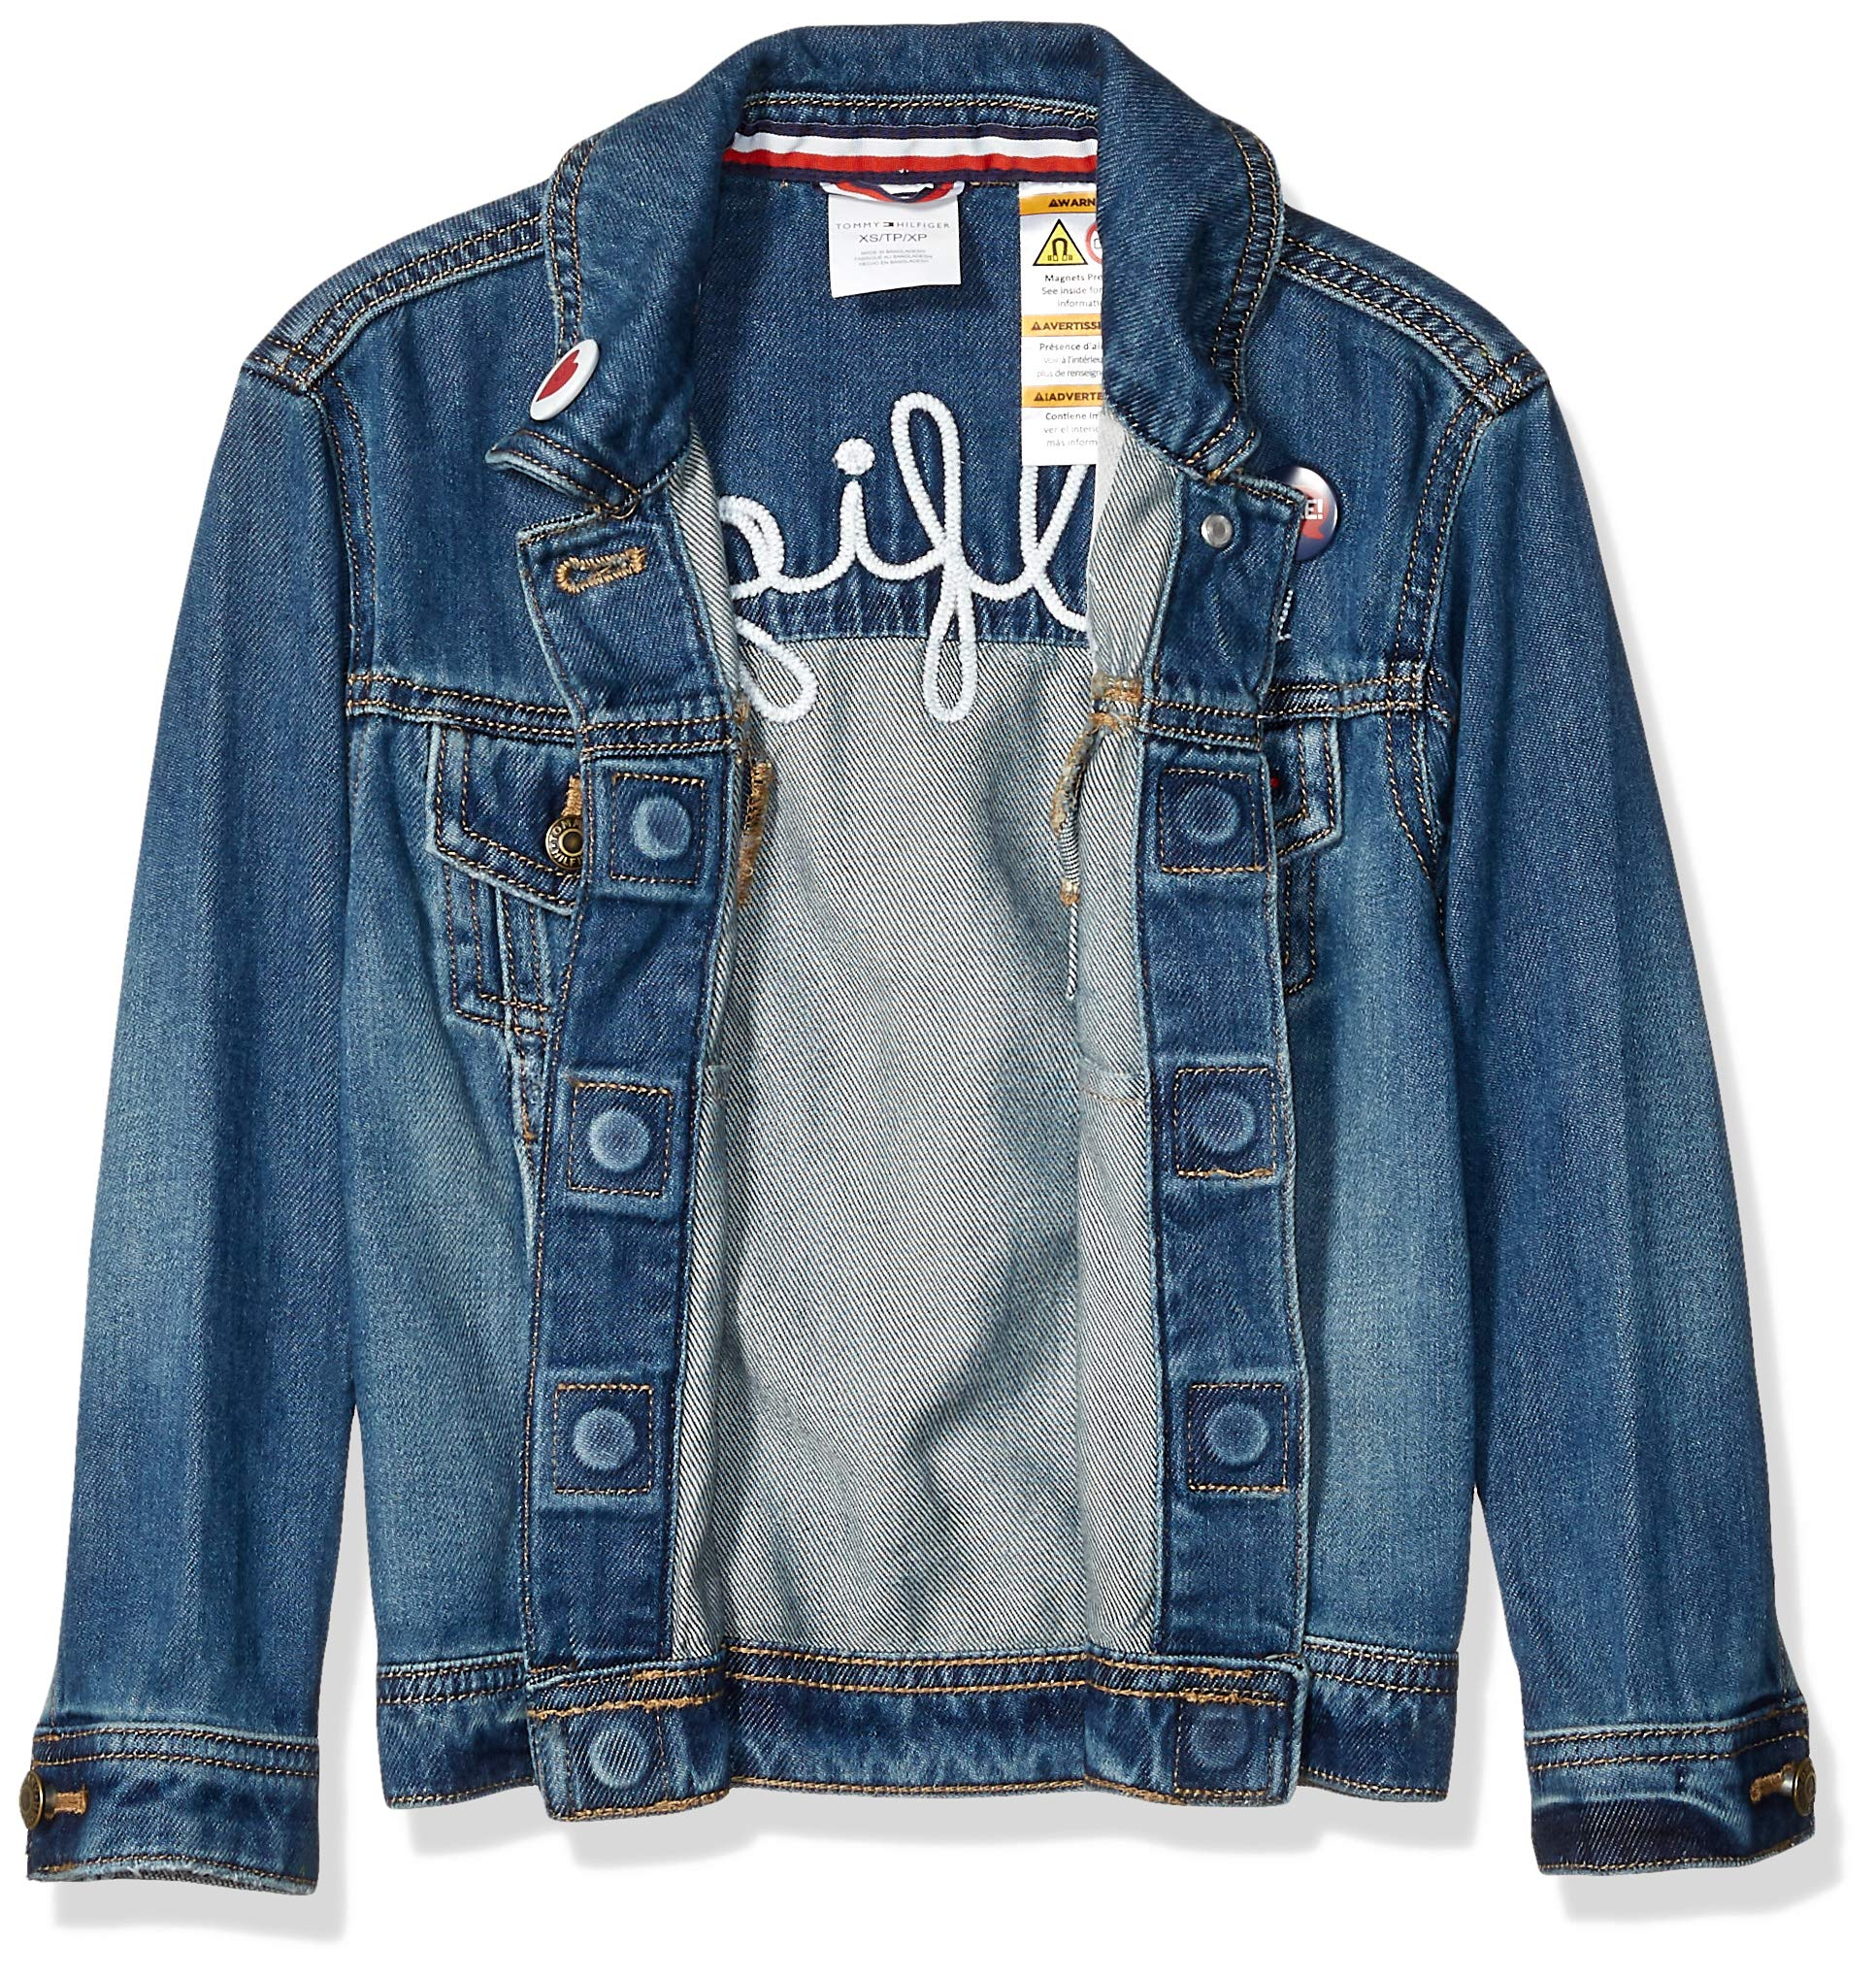 Tommy Hilfiger Girls' Adaptive Jean Jacket with Magnetic Buttons, Vegas Wash S by Tommy Hilfiger (Image #3)